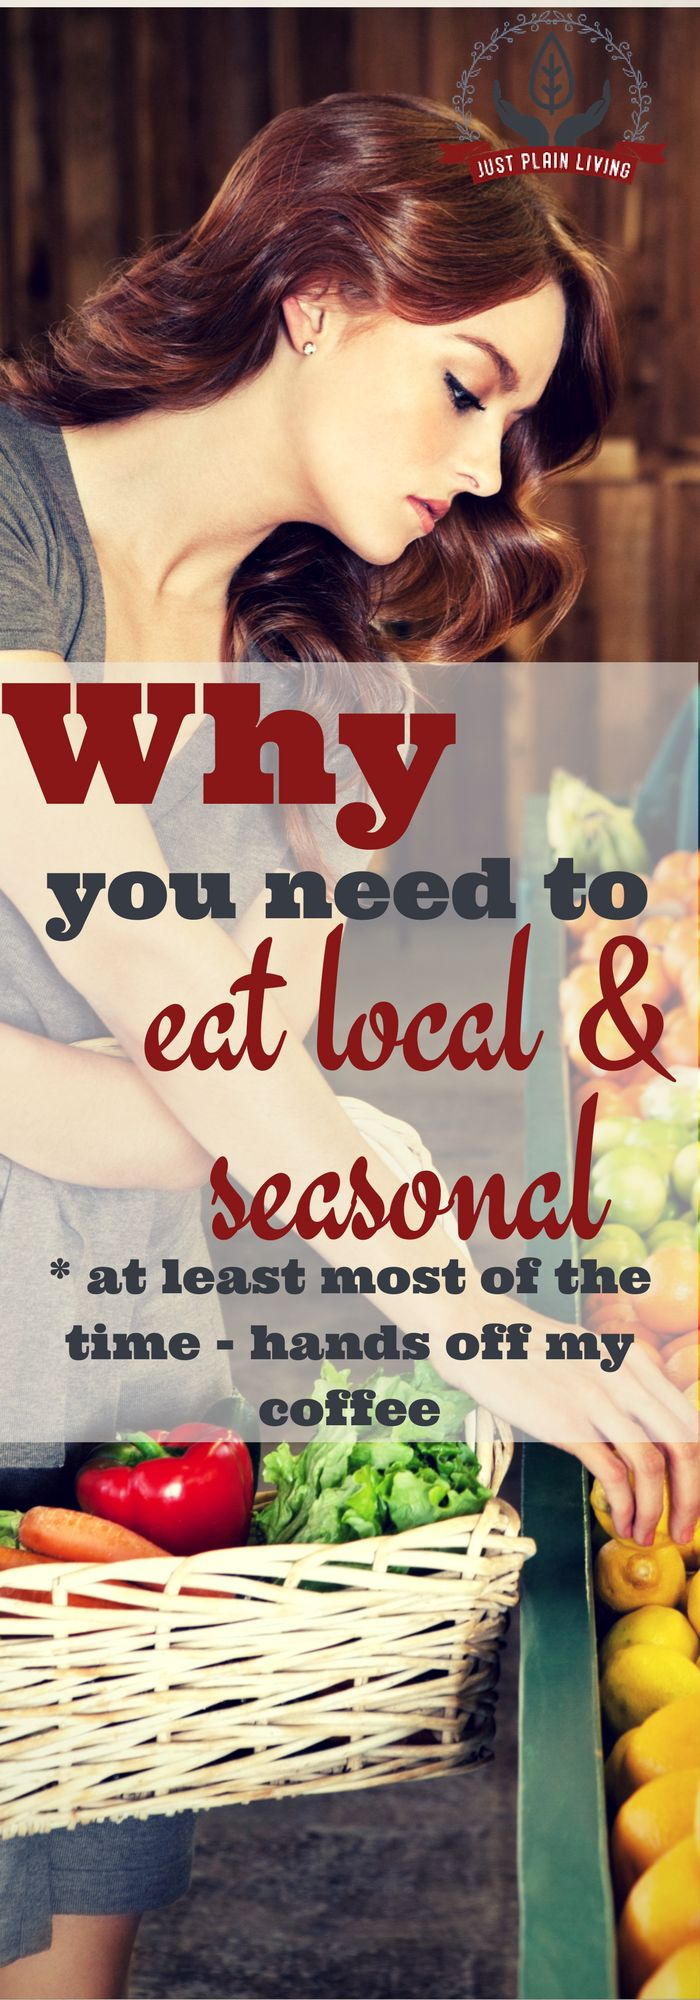 Local, seasonal food is the healthiest option for you and your family, for your community and even for the planet. A lot happens when you bite into a locally grown tomato! #local #seasonal #healthy http://justplainmarie.ca/why-you-should-eat-local-and-seasonal-food/